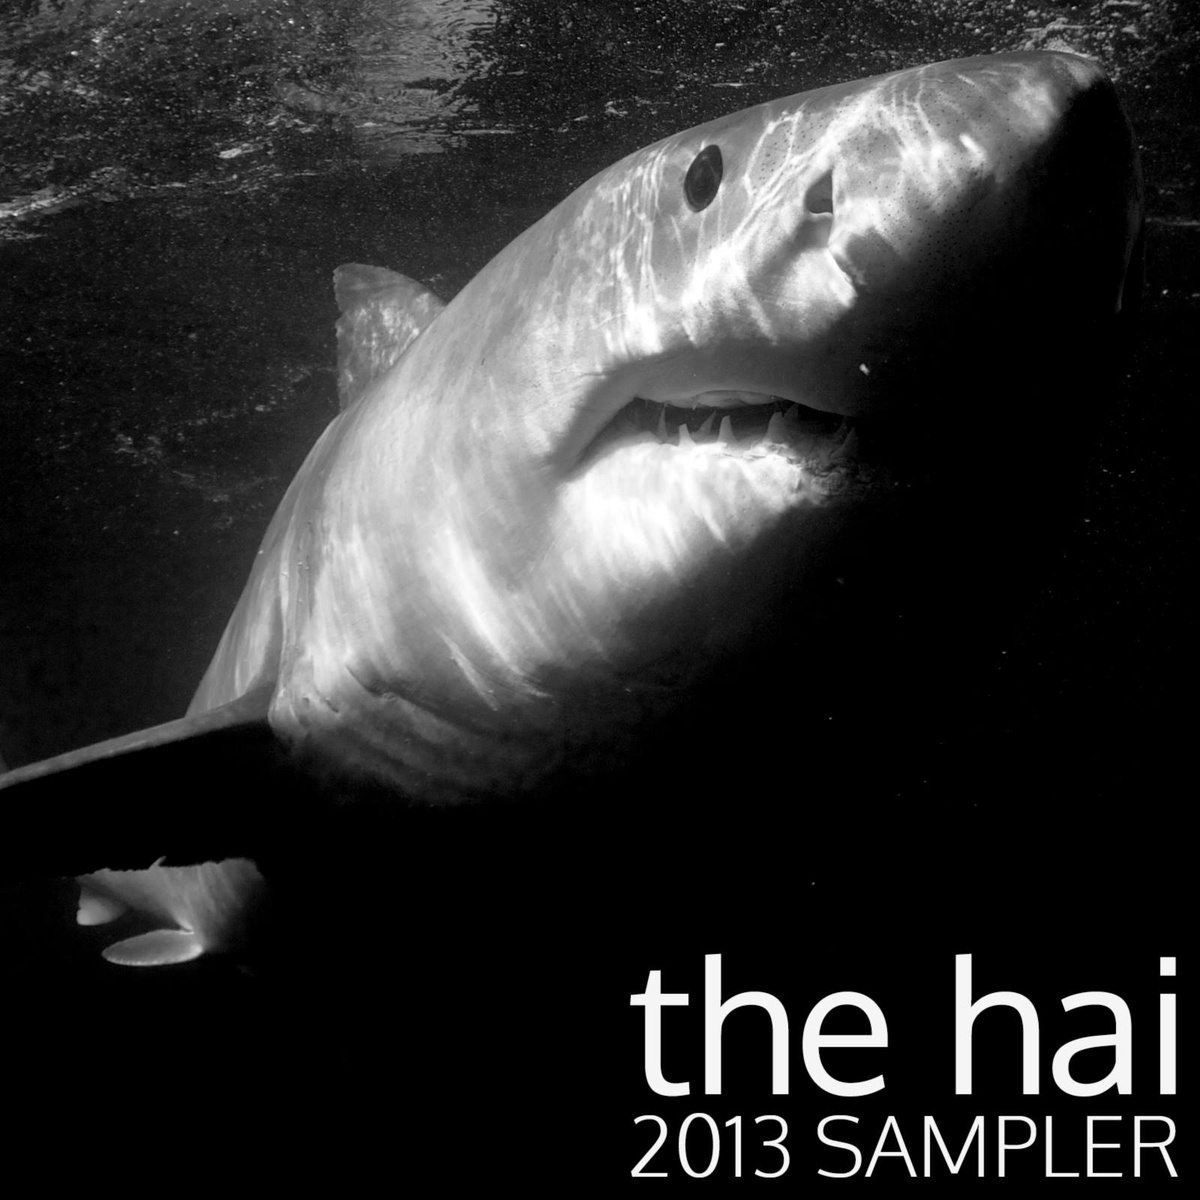 The Hai 2013 Sampler Album Art